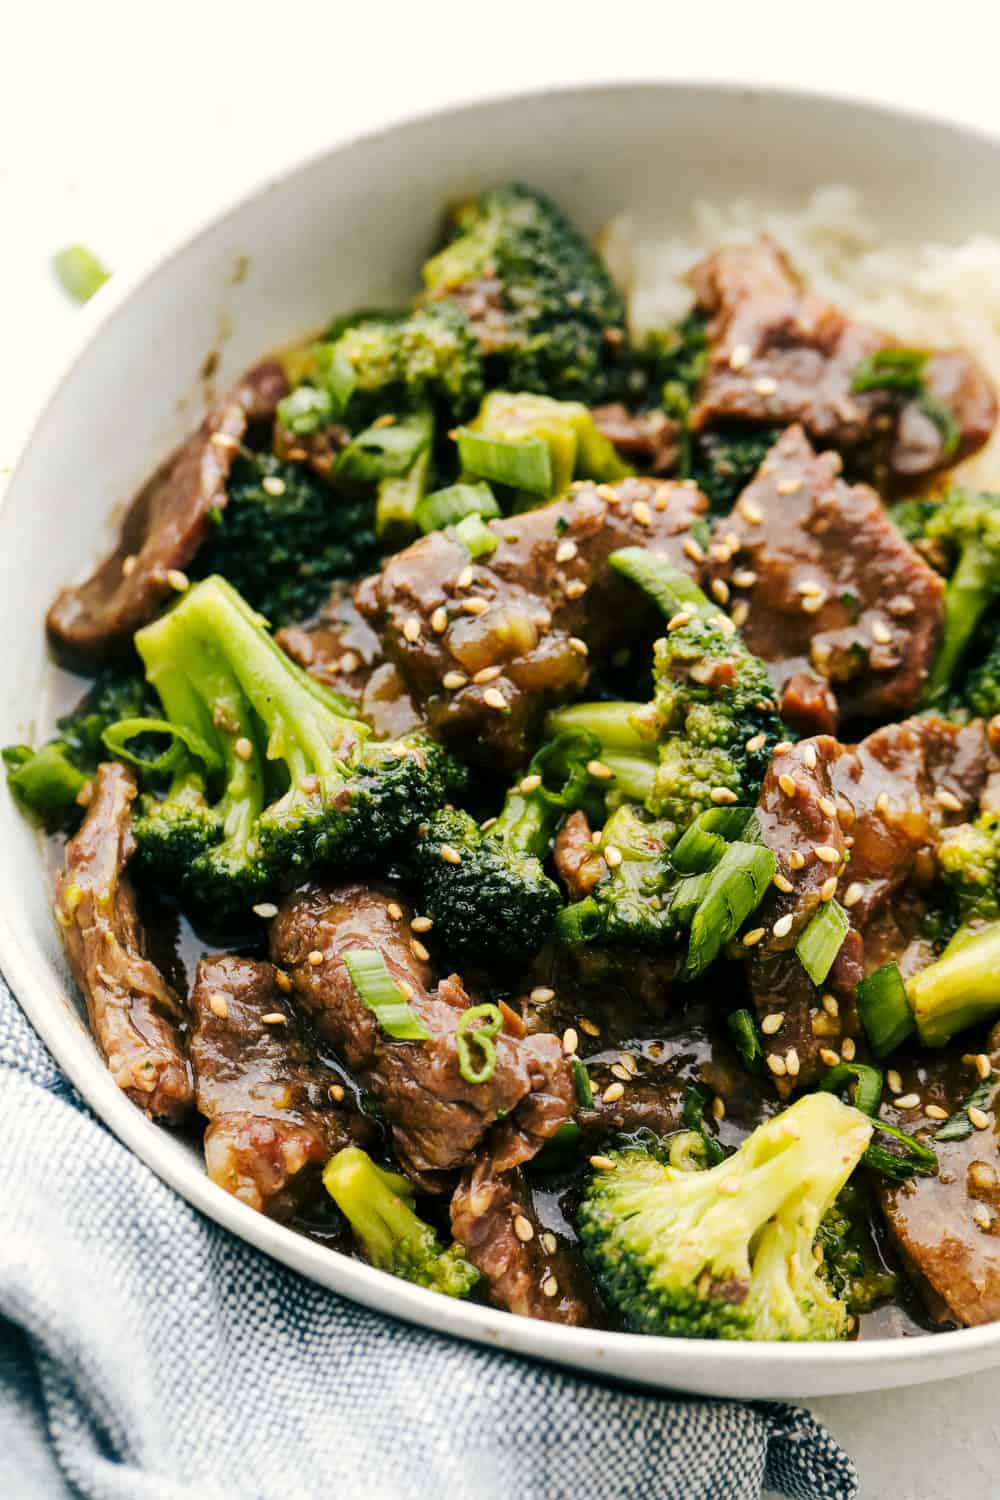 Beef and broccoli over rice in a white bowl.